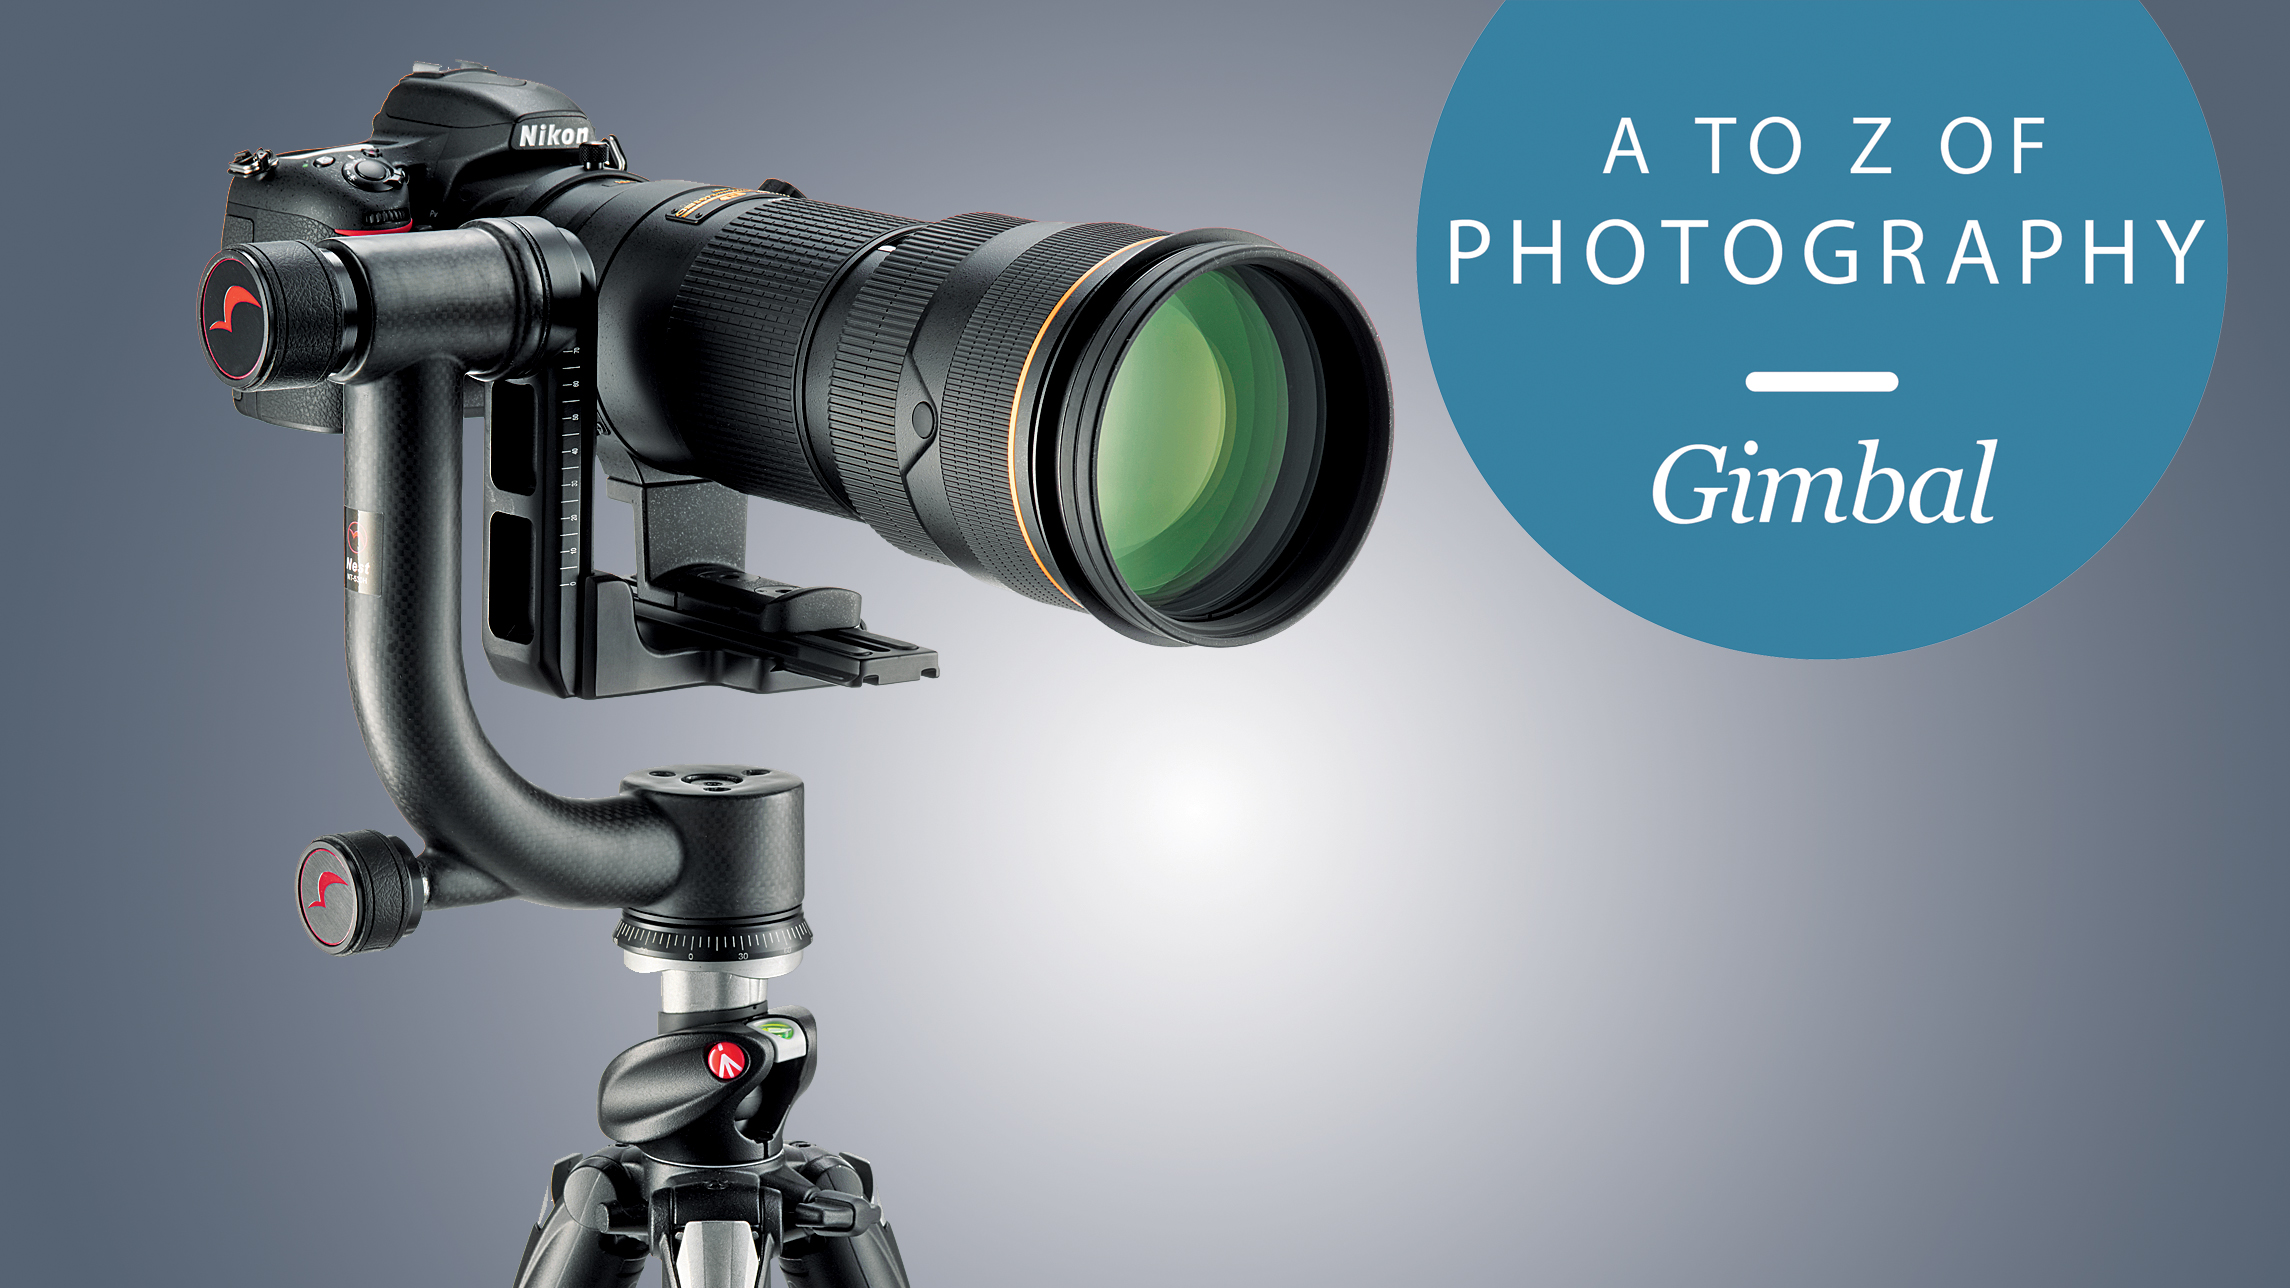 The A to Z of Photography: Gimbal